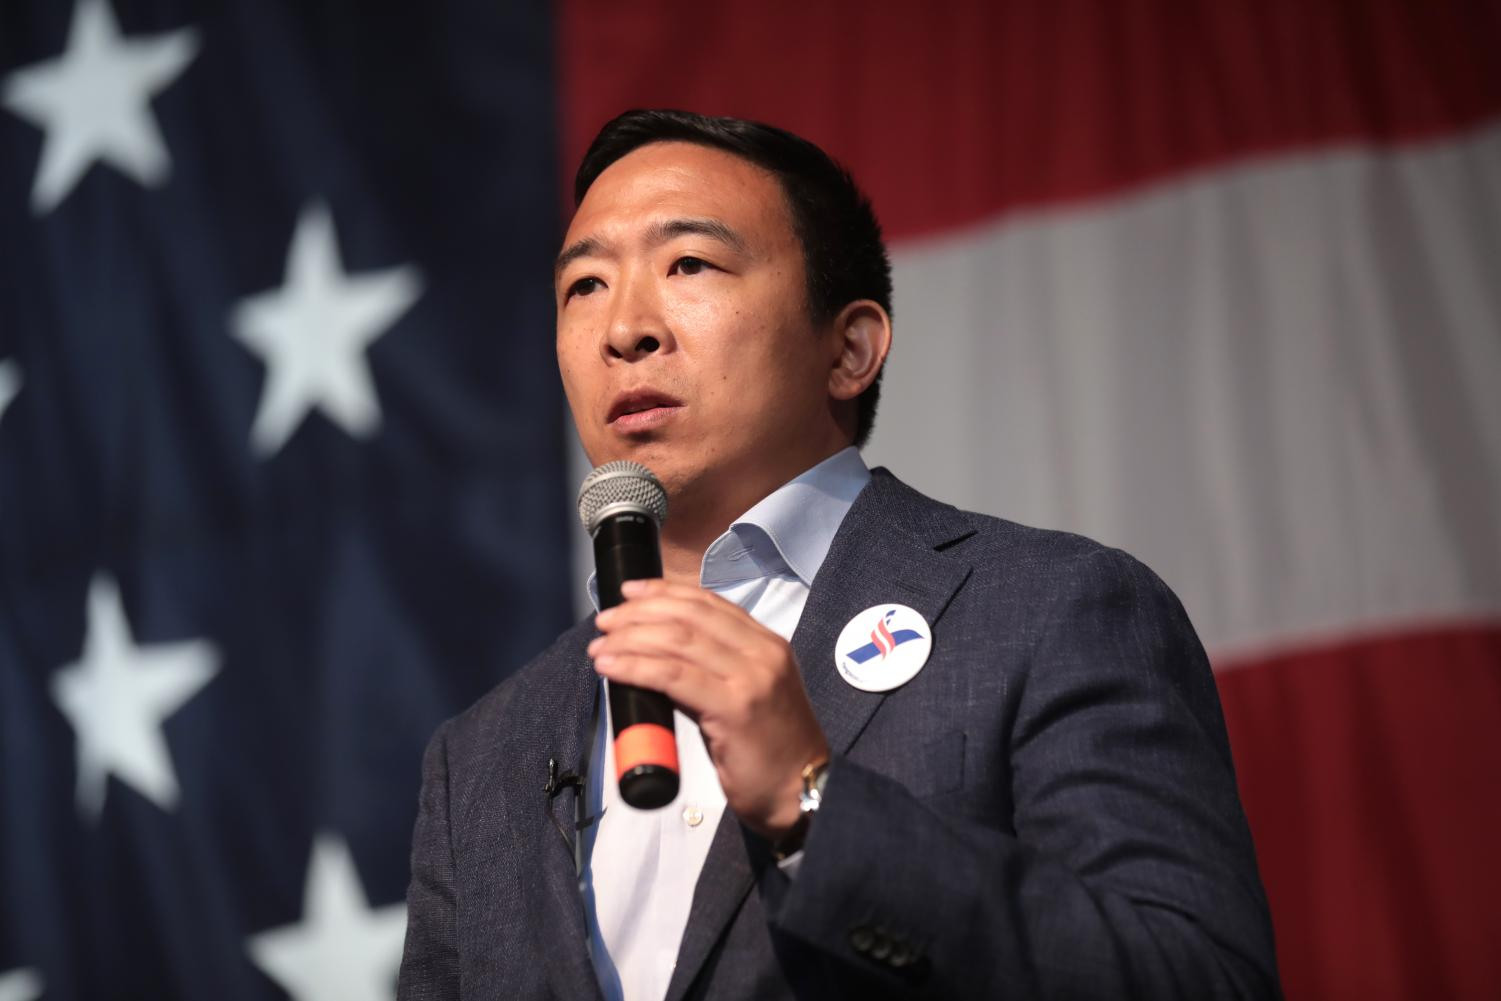 Democratic presidential candidate Andrew Yang was the first among the candidates to announce his plan to implement UBI. The policy, named the Freedom Dividend, would provide every U.S. adult citizen with $1000 a month.